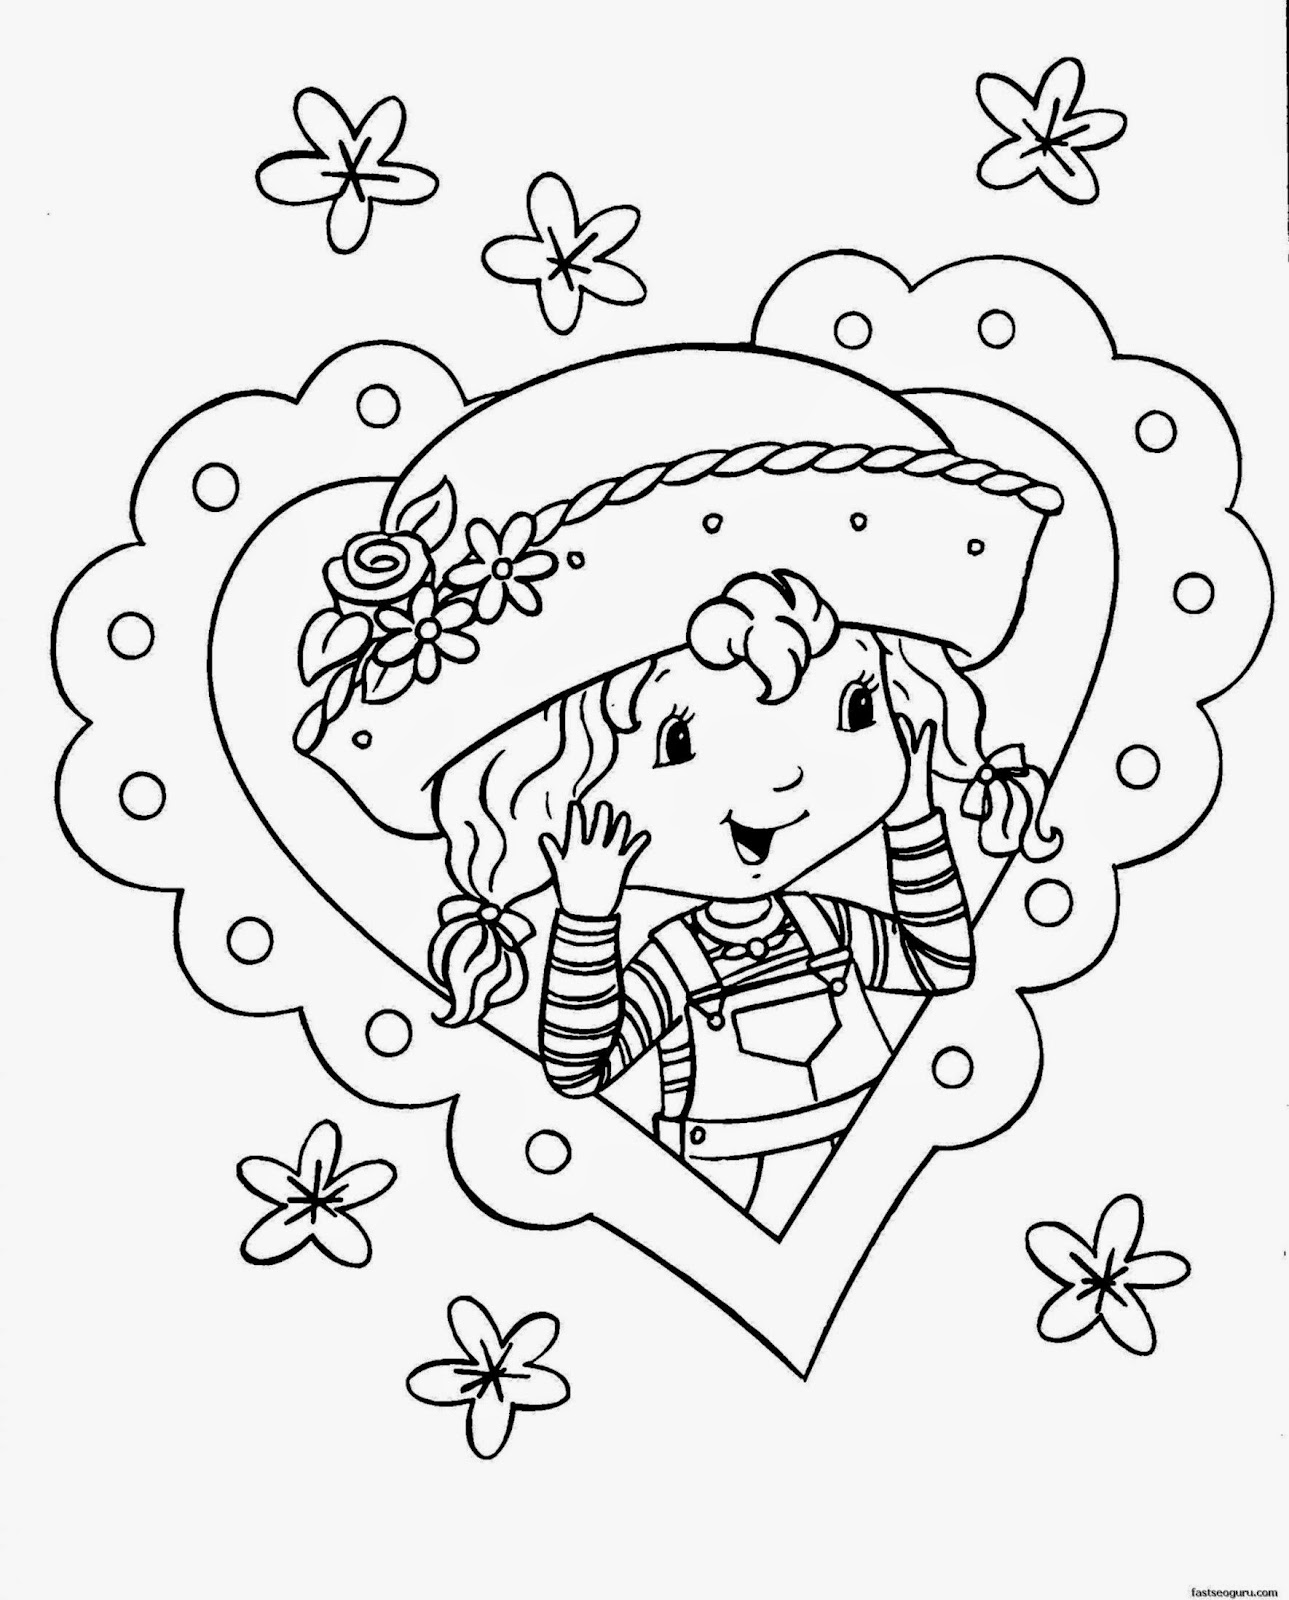 Printable coloring pages for girls free coloring sheet for Coloring pages to print for girls